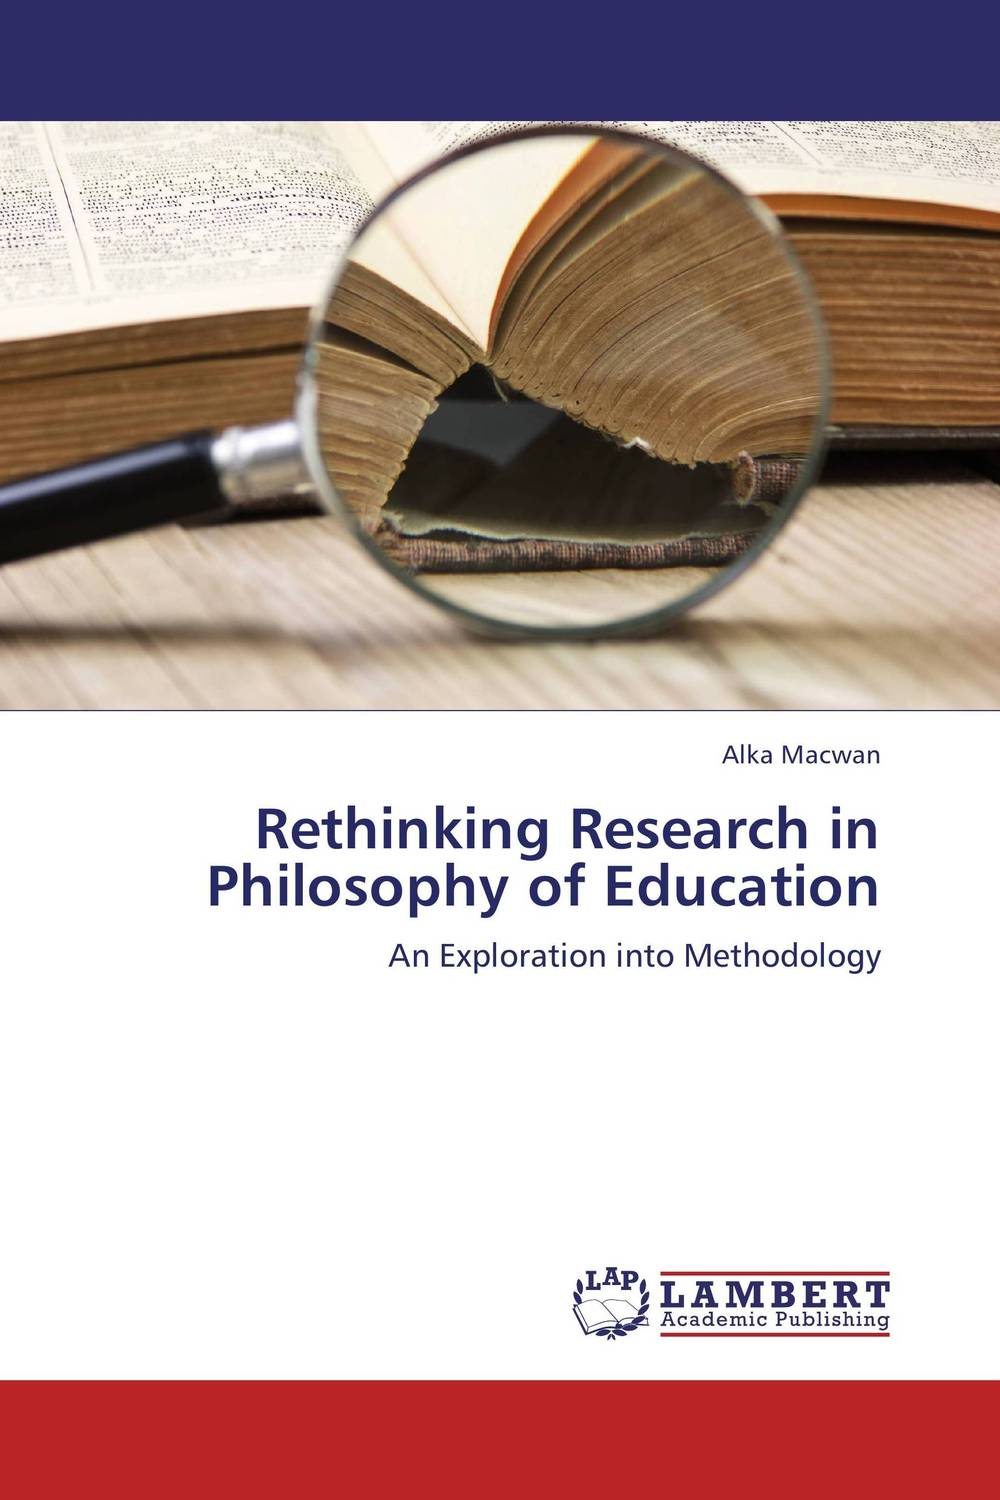 Rethinking Research in Philosophy of Education